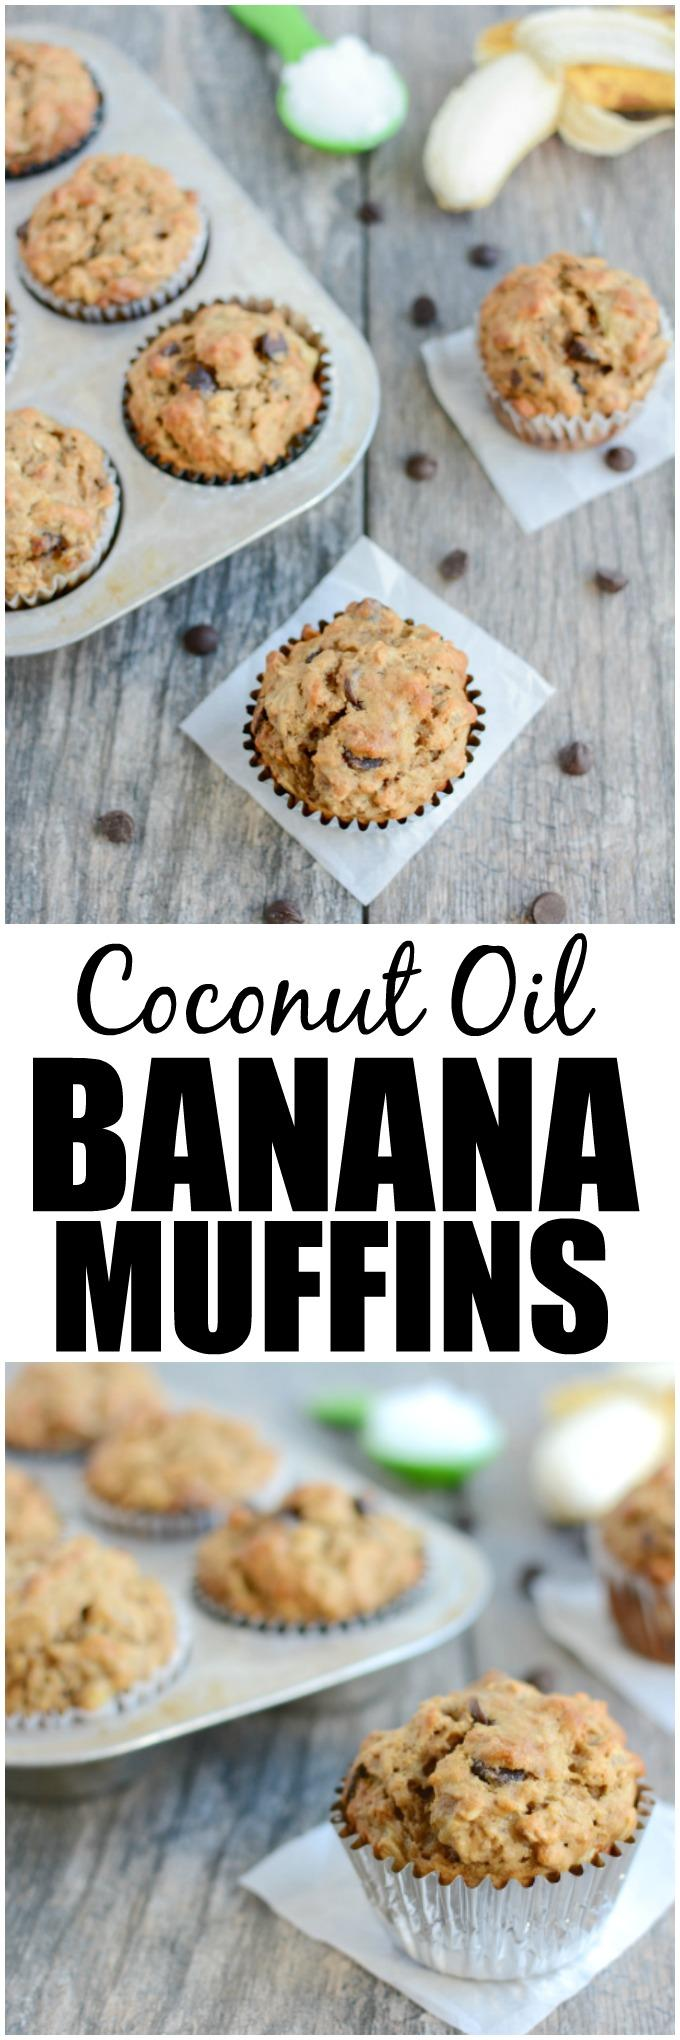 banana muffins coconut oil